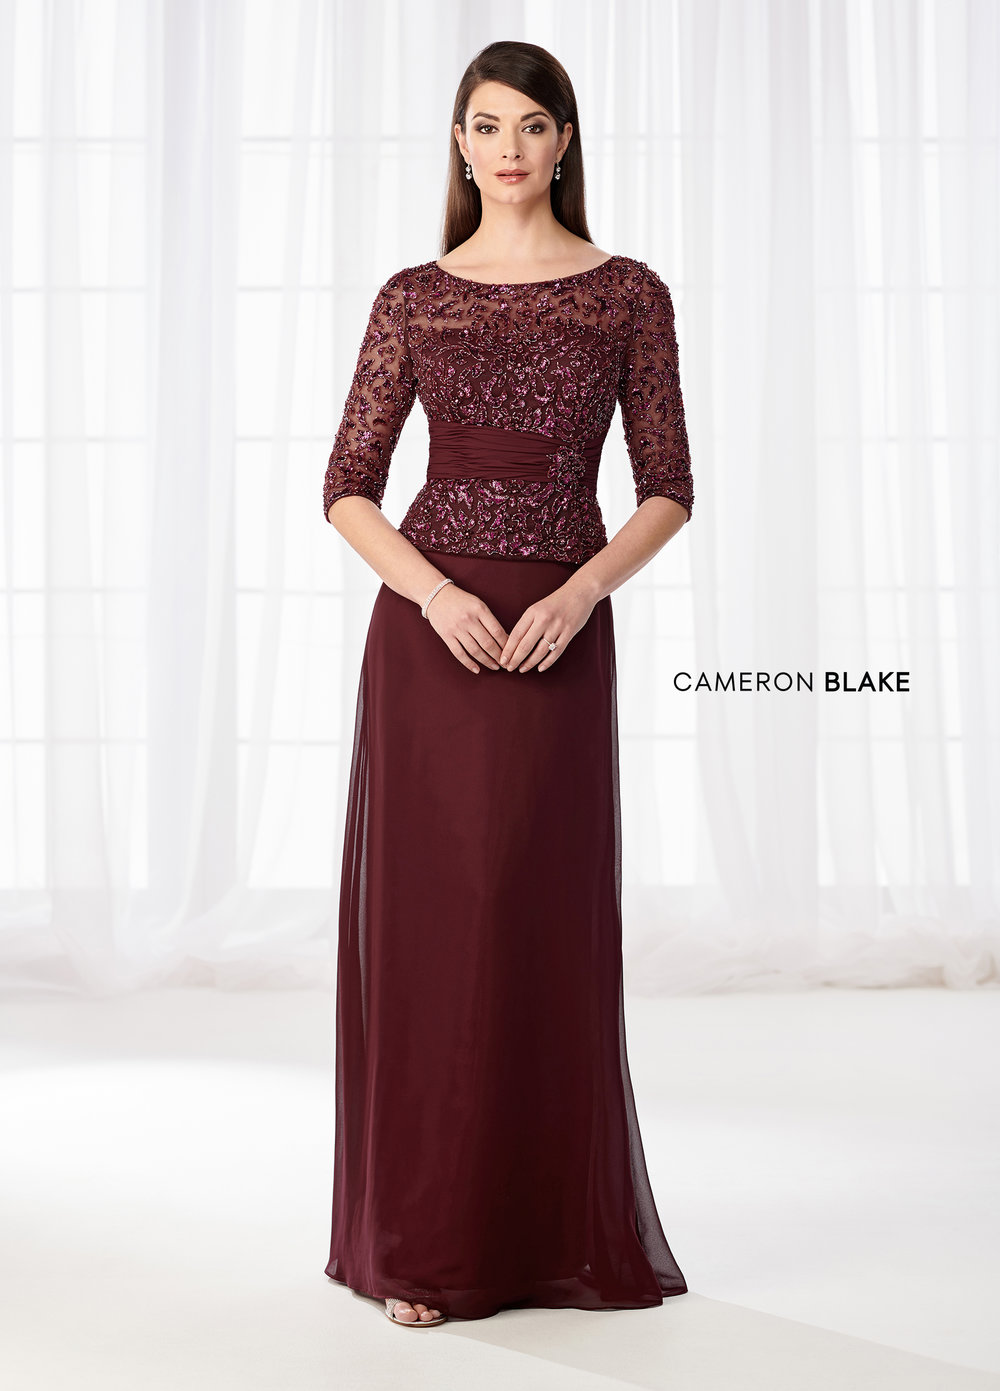 Cameron Blake Mother of the Bride Dresses at Lilla's Bridal